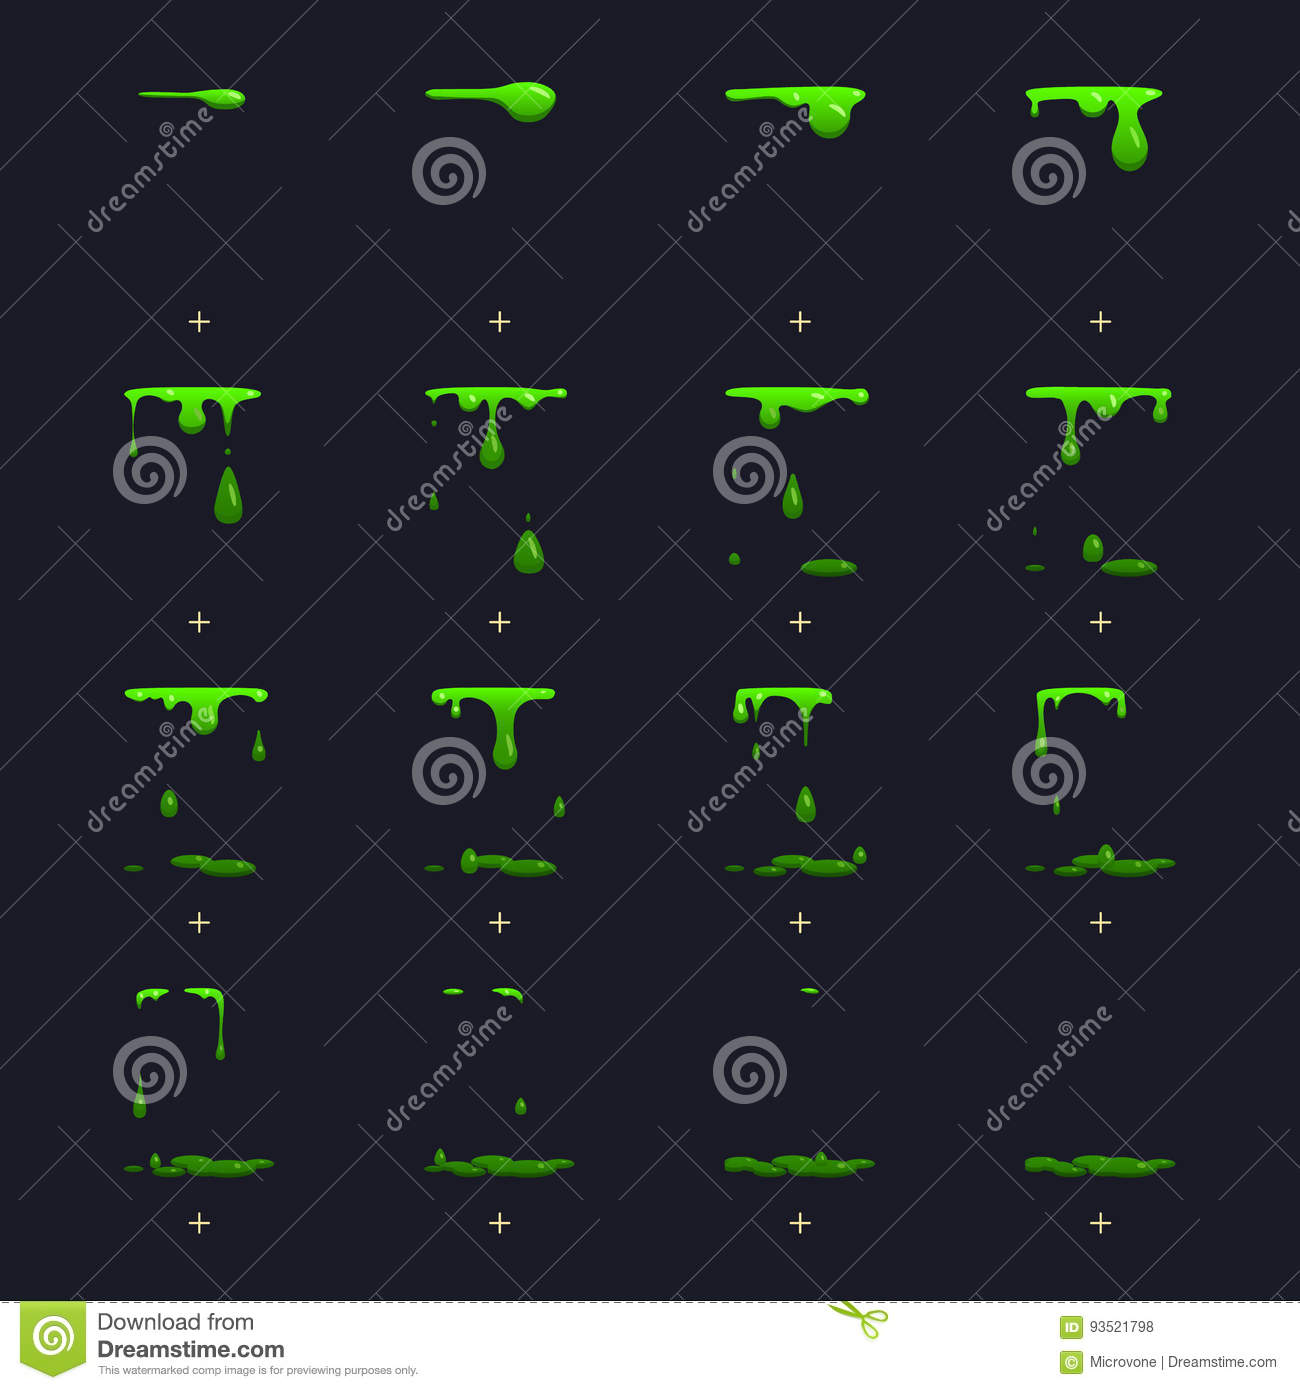 Toxic waste, dripping green slime vector animation sprite